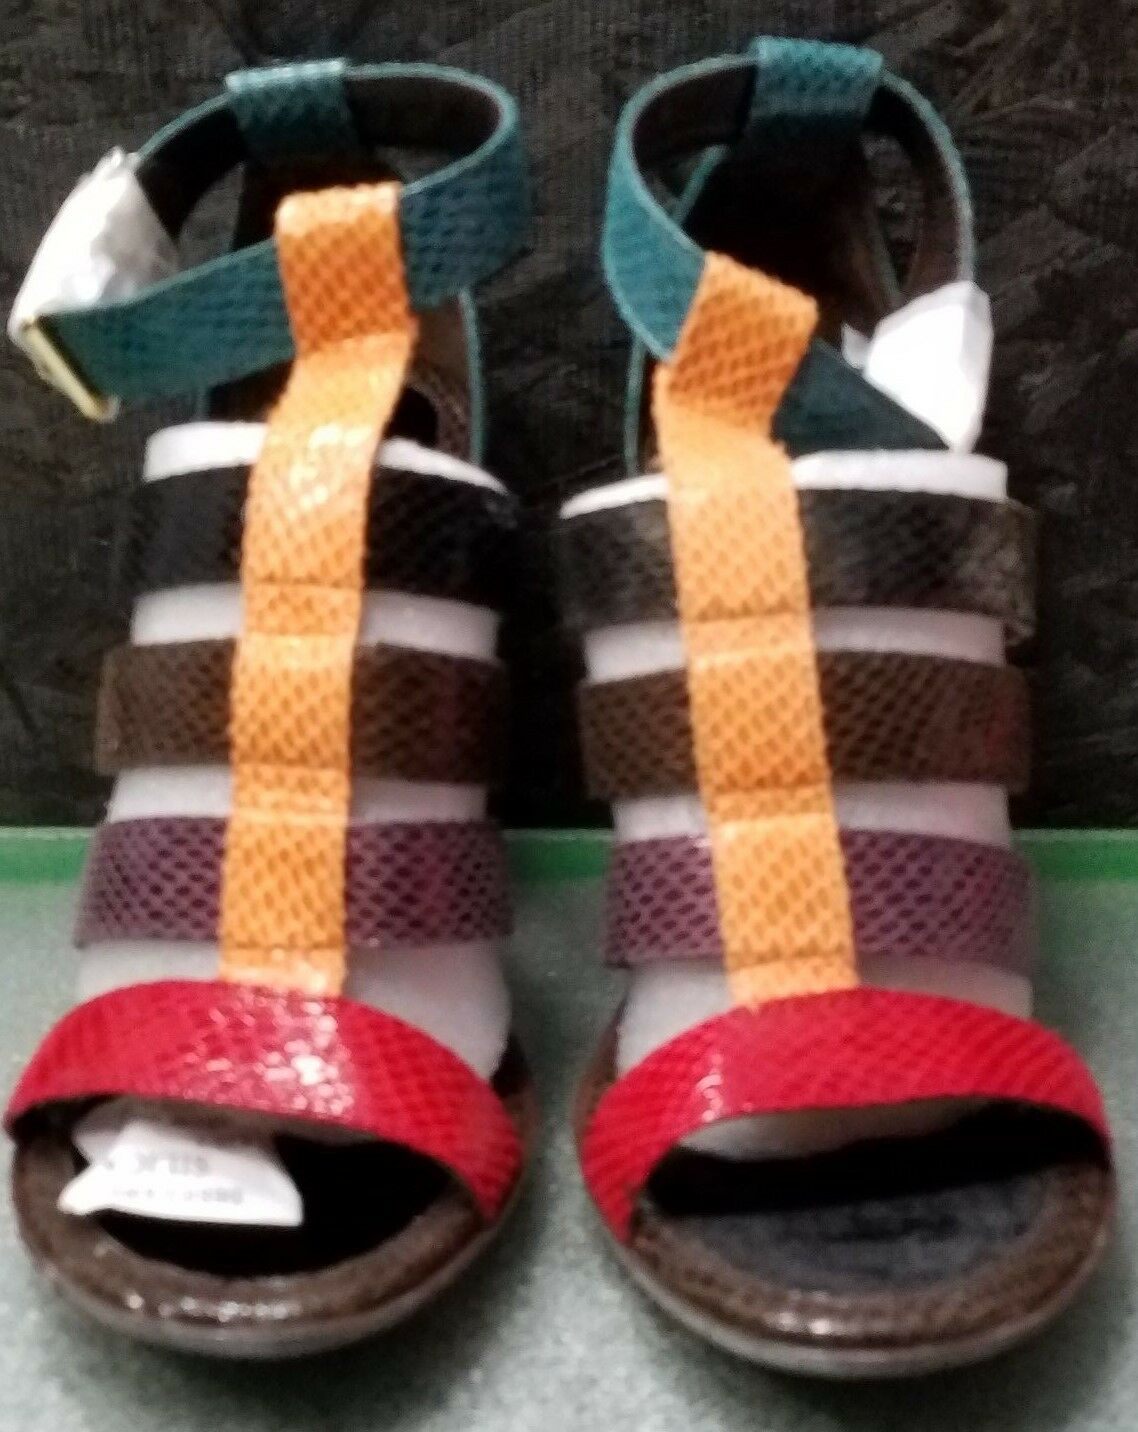 Brown Multi color Snake Open Toe Strap Heel by Baby Phat, Size 7M, NWB